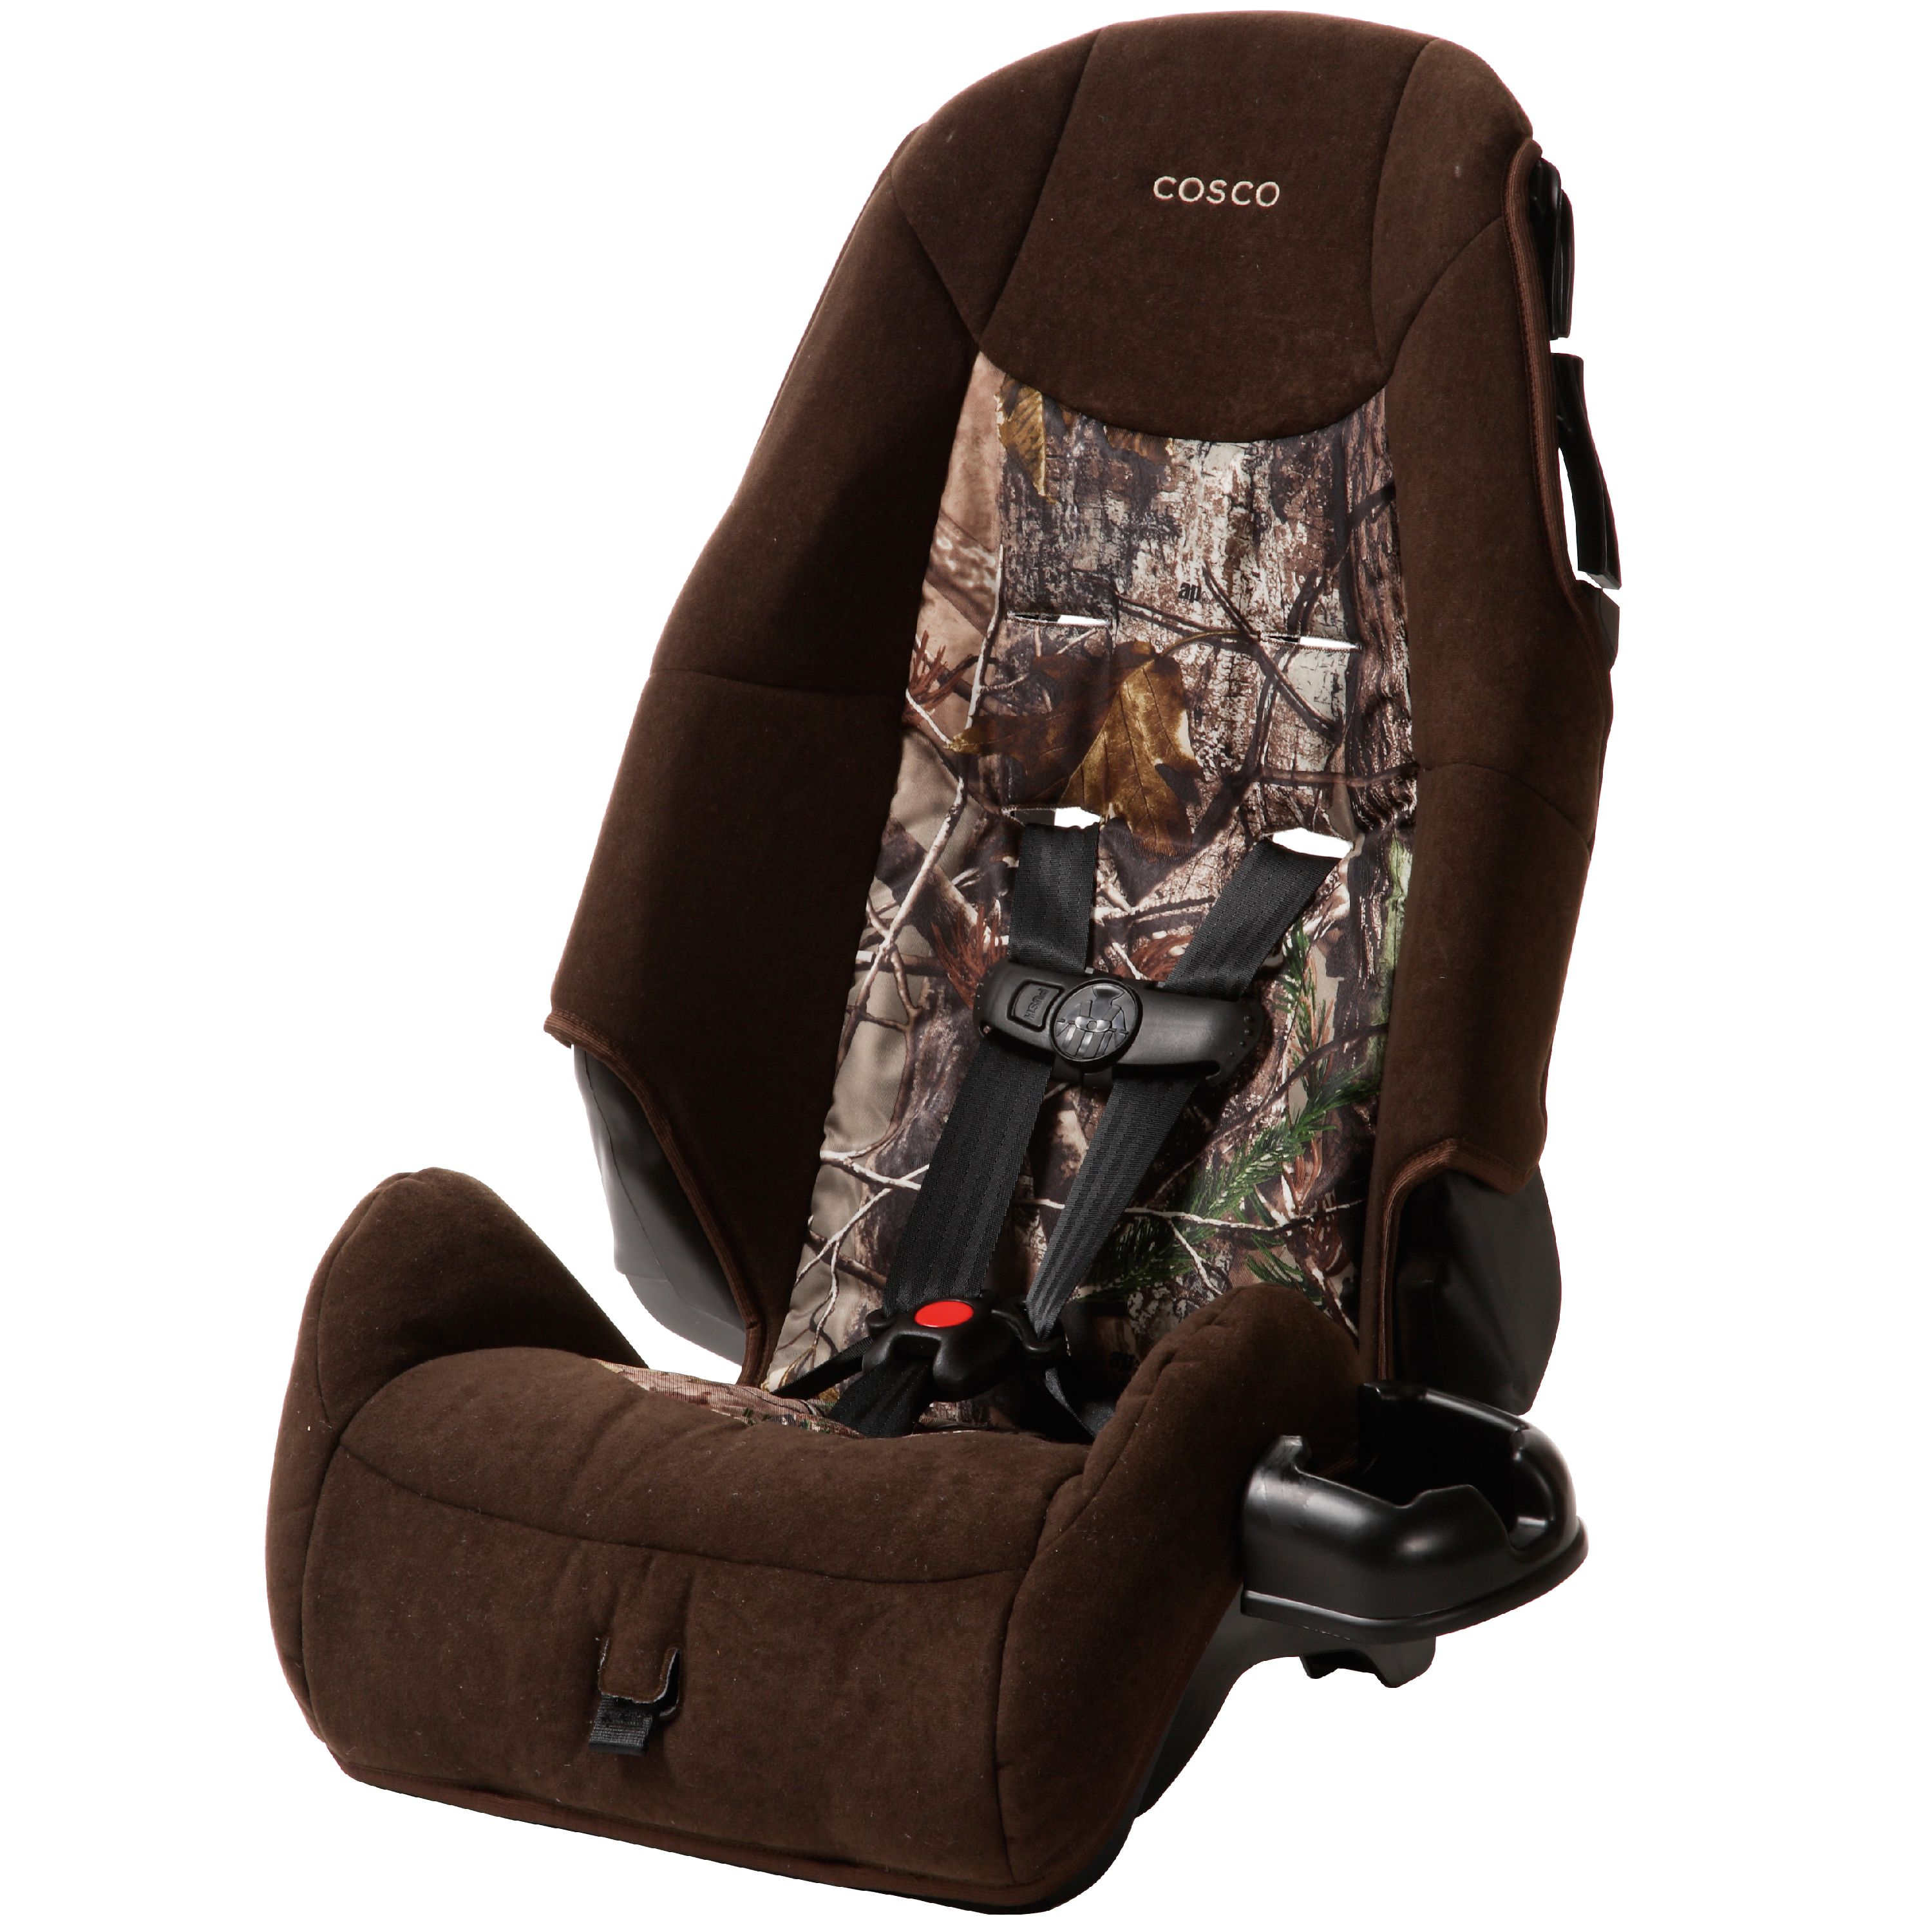 safety 1st high chair recall rocking with footrest india cosco car seat expiration date brokeasshome